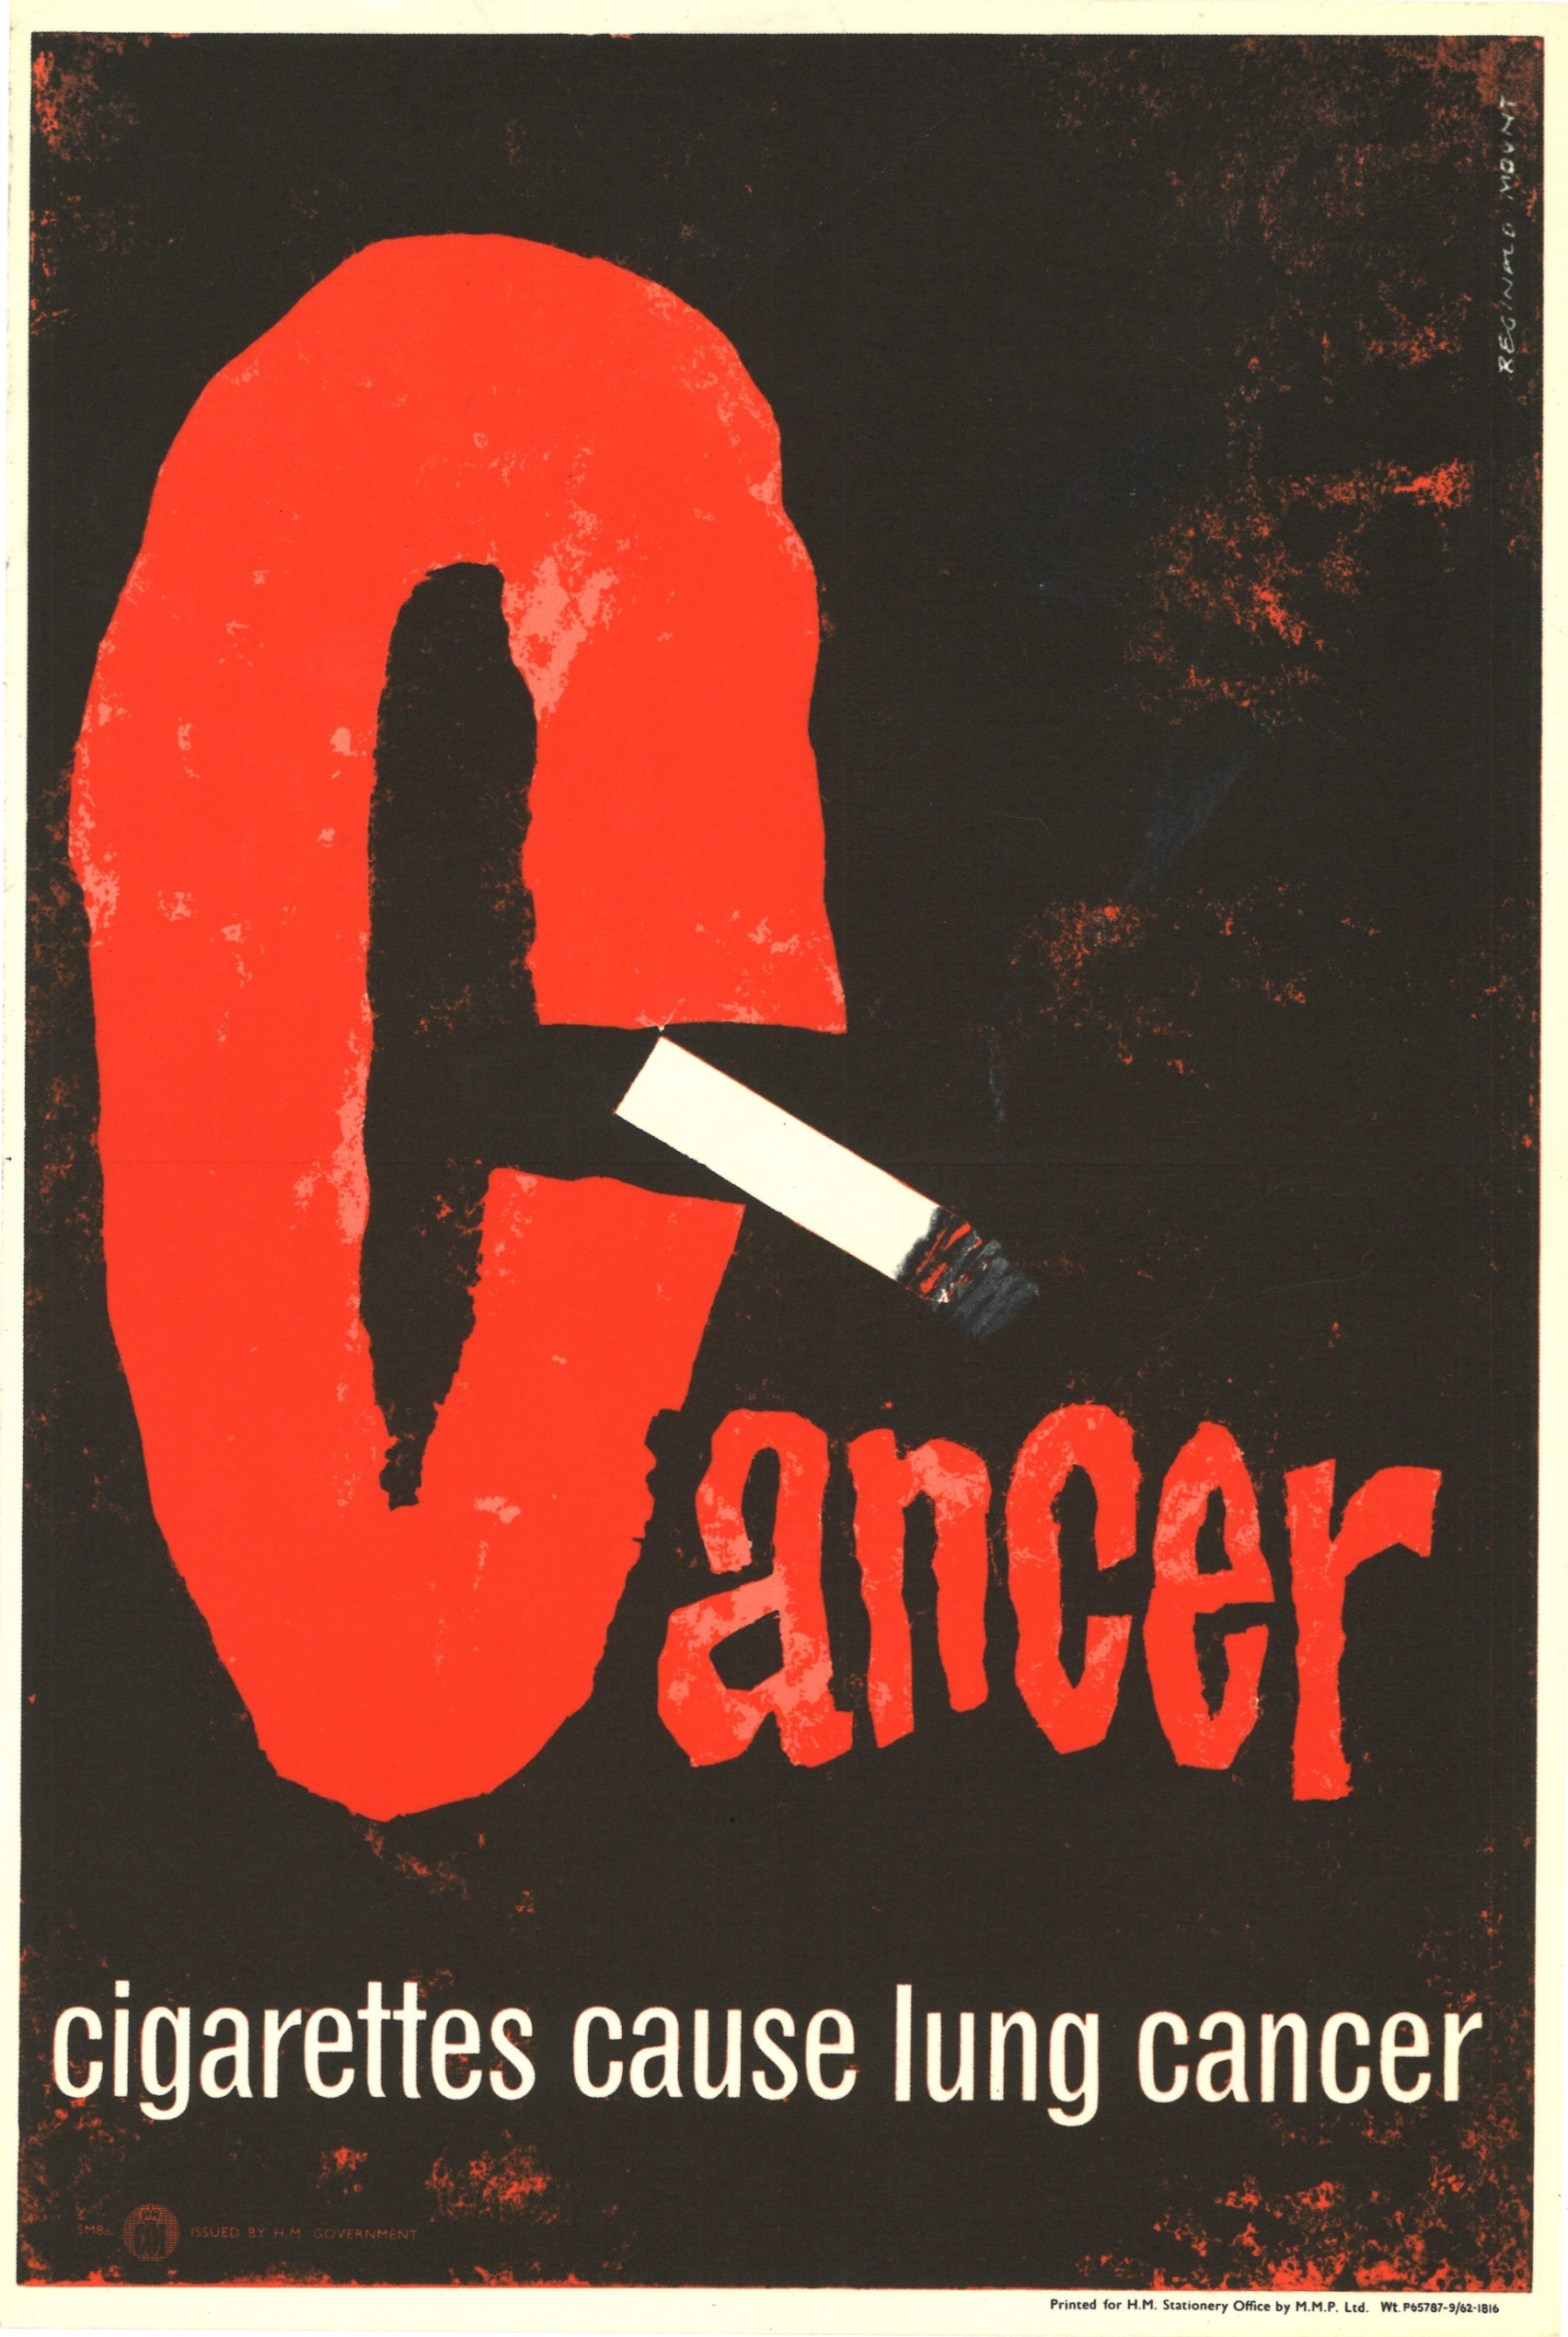 Thumbnail for The Daily Heller: Remember When All We Worried About Was Smoking?